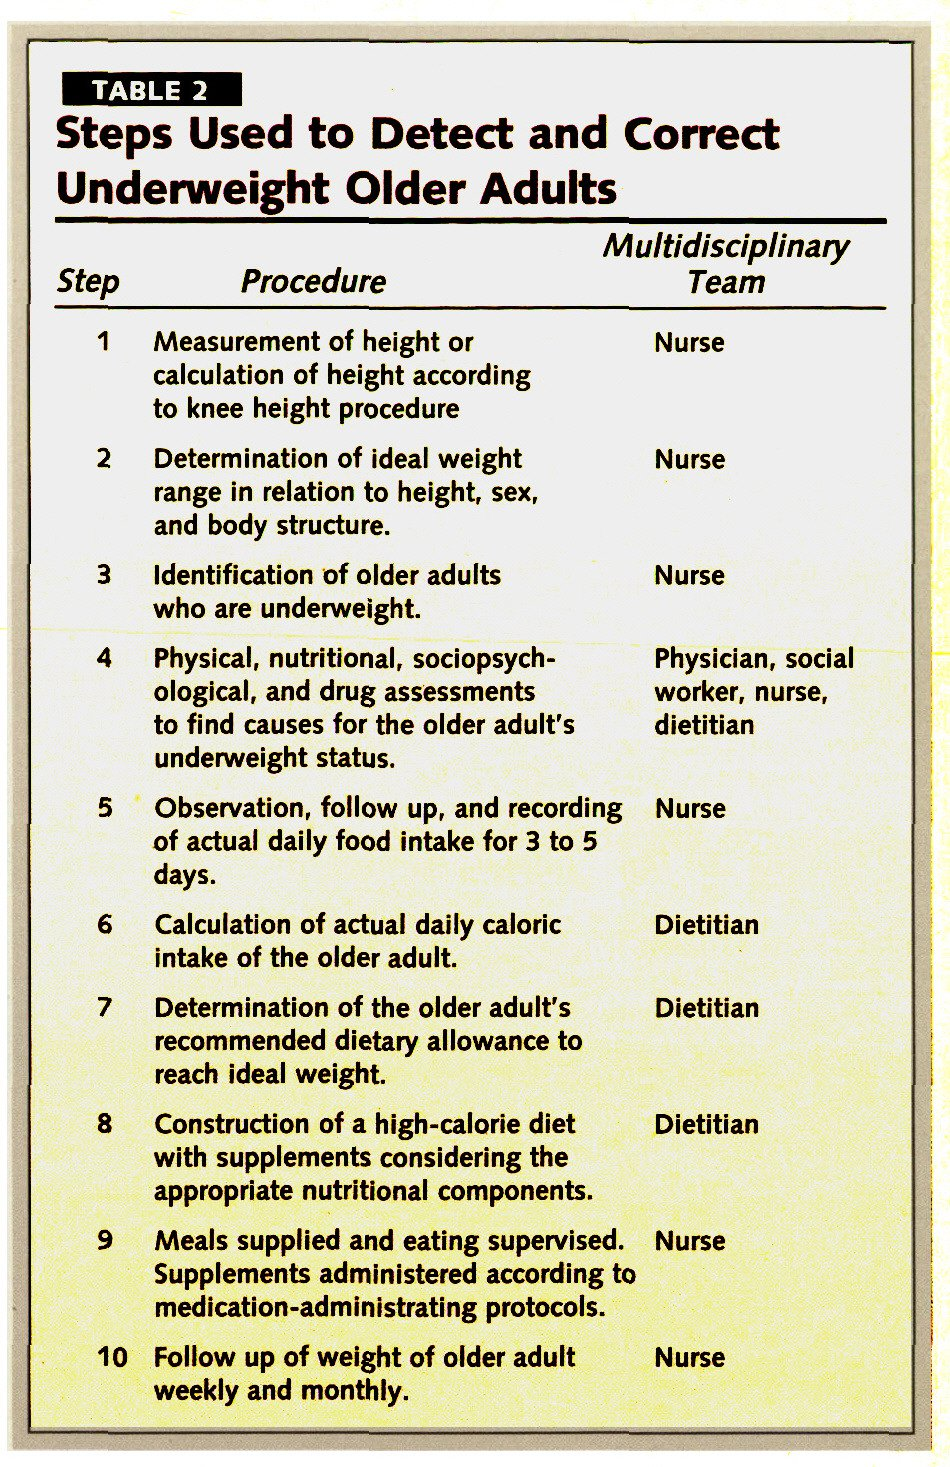 TABLE 2Steps Used to Detect and Correct Underweight Older Adults